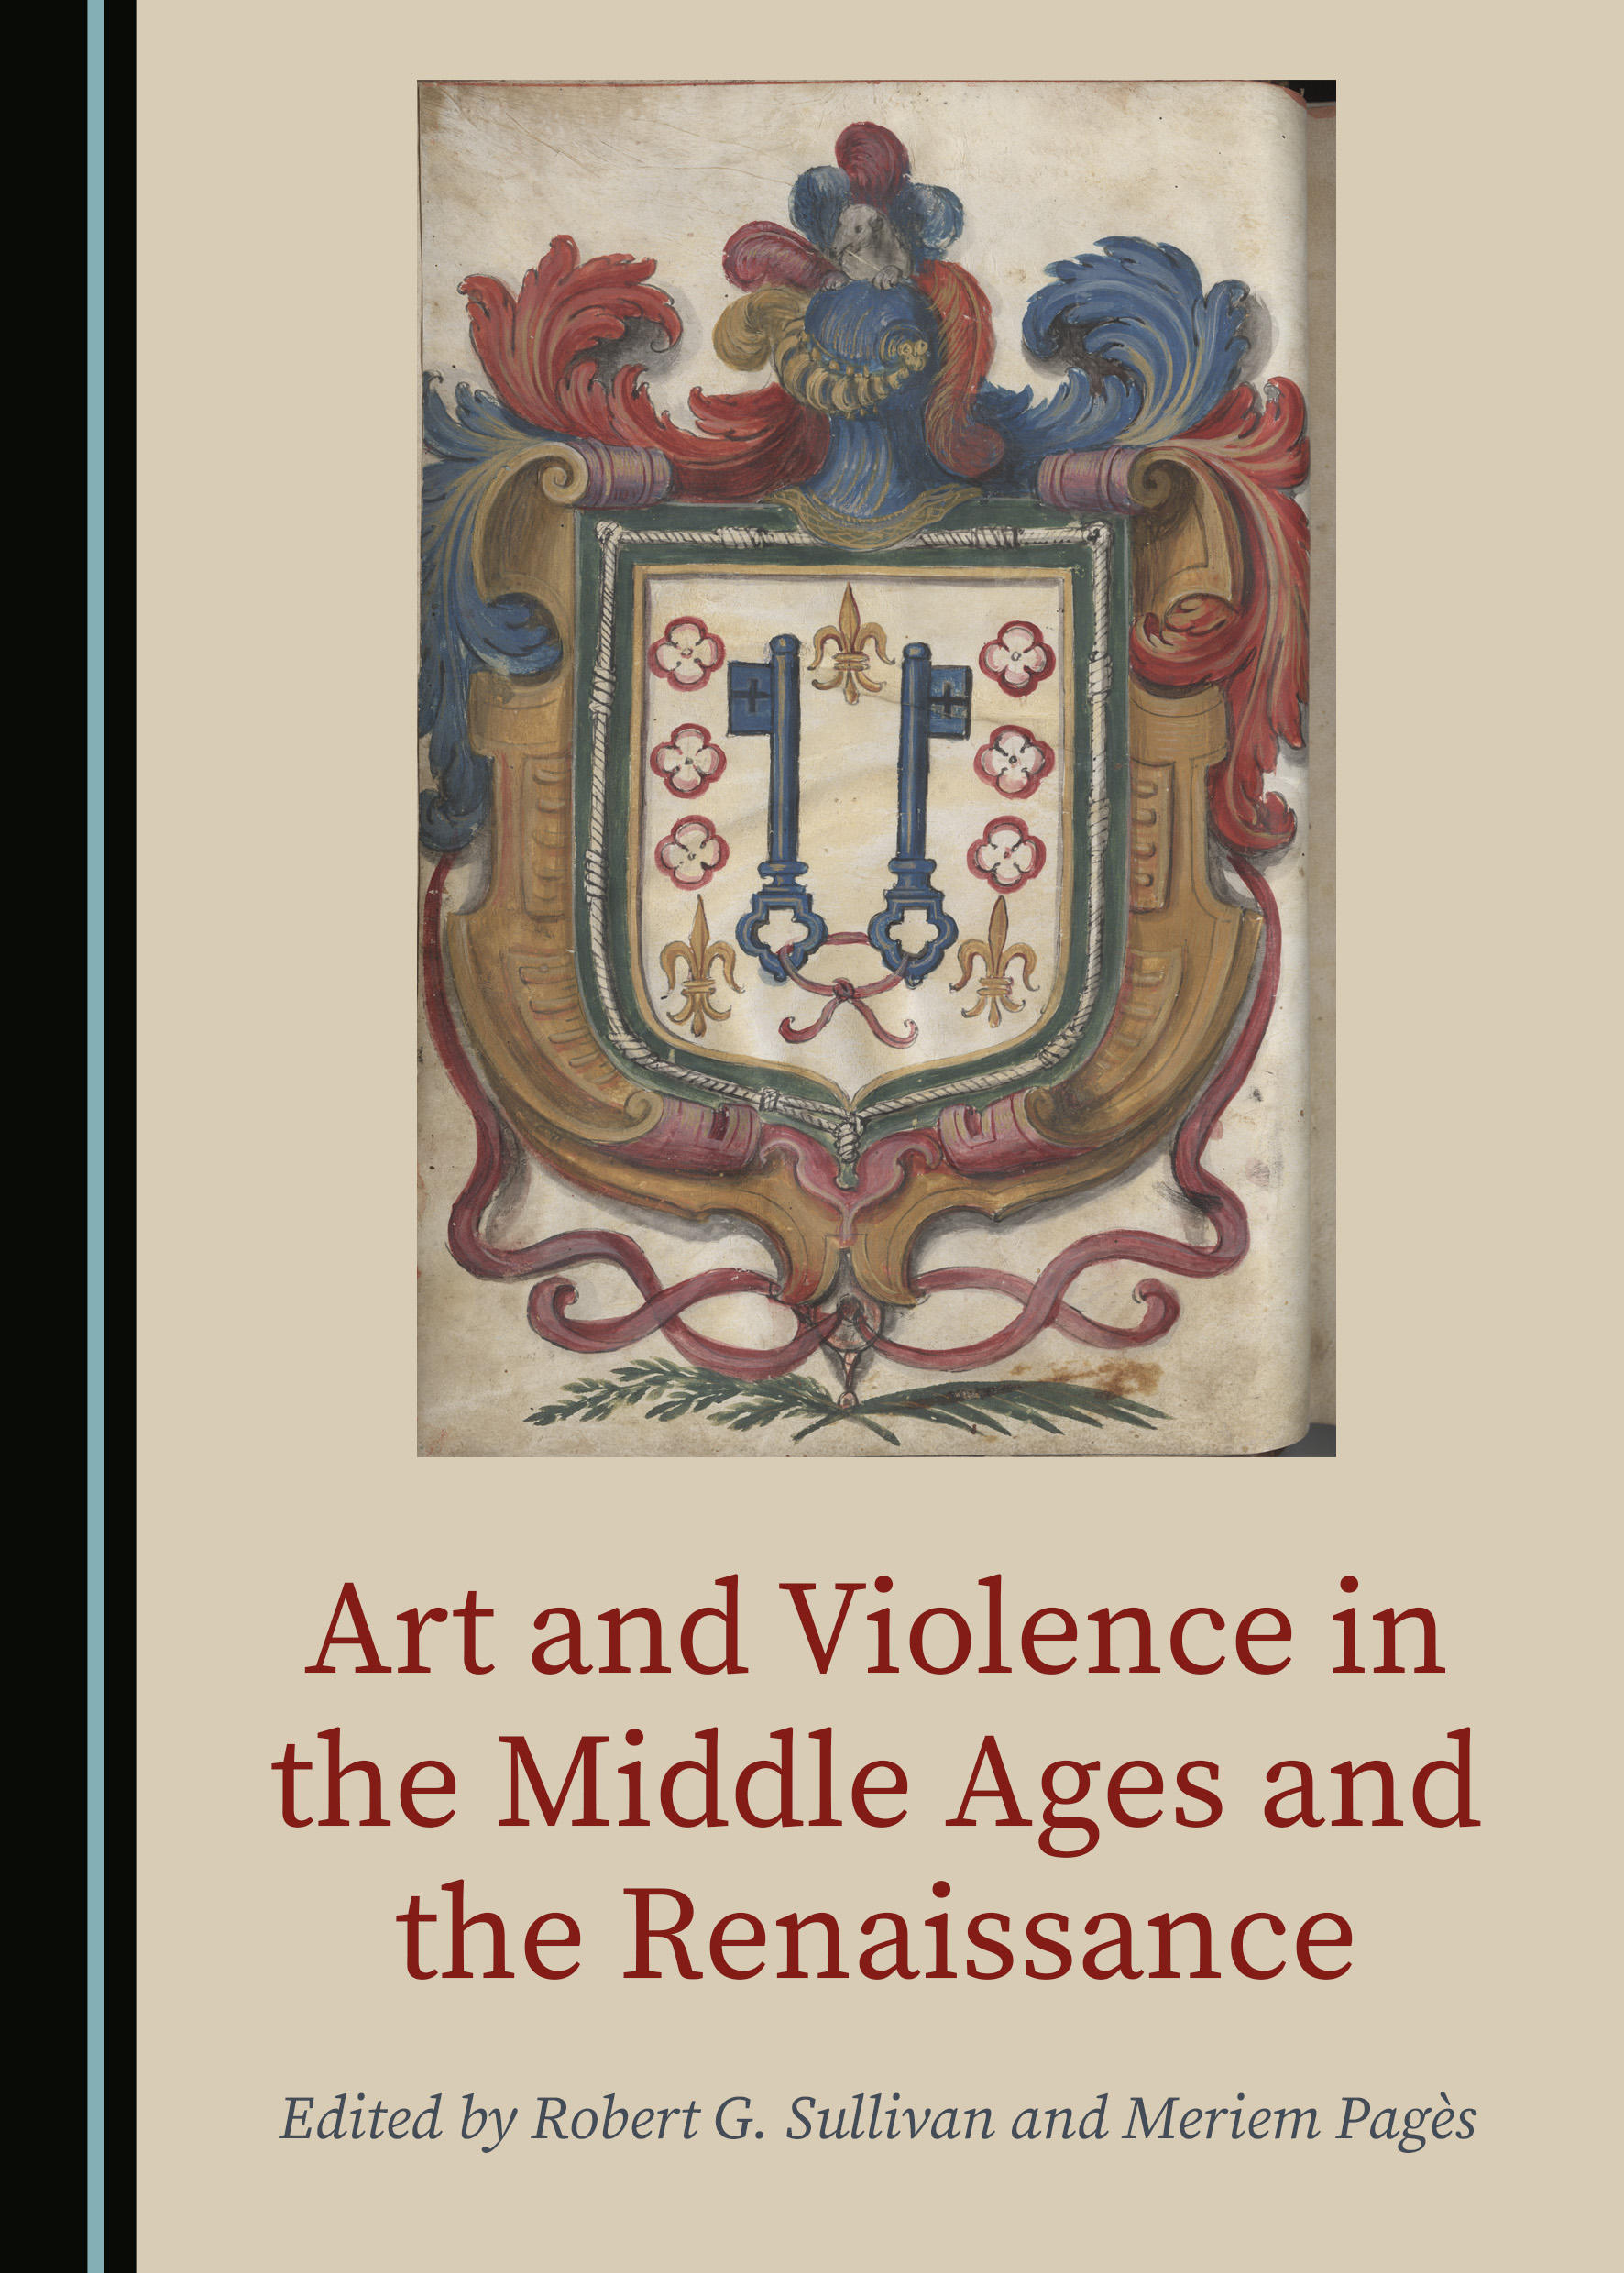 Art and Violence in the Middle Ages and the Renaissance